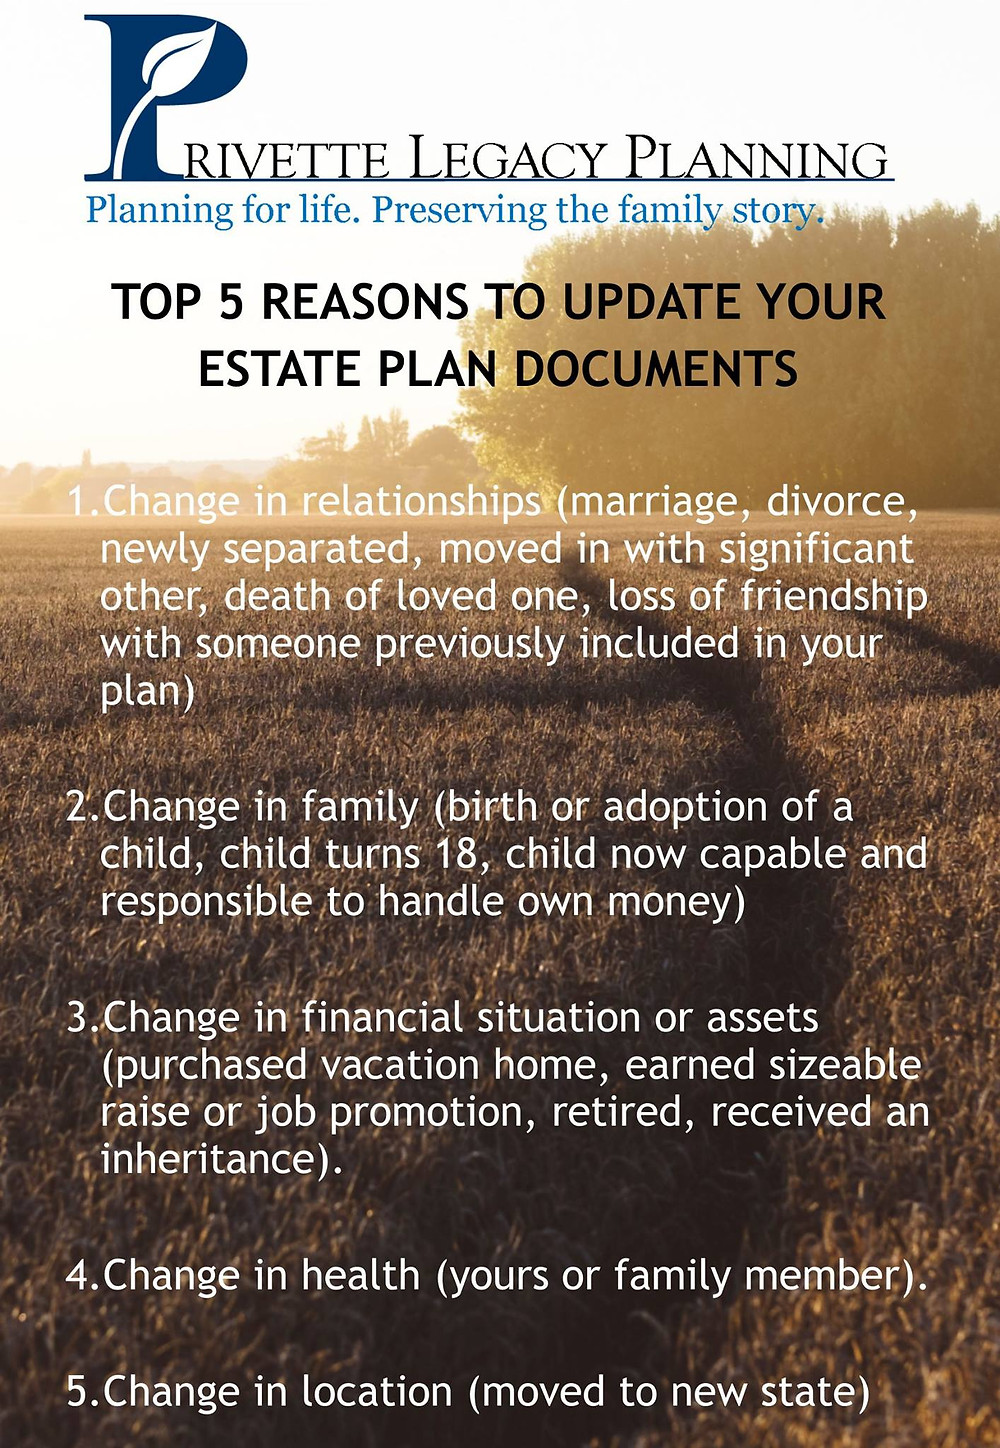 Top 5 Reasons to Update Estate Plan